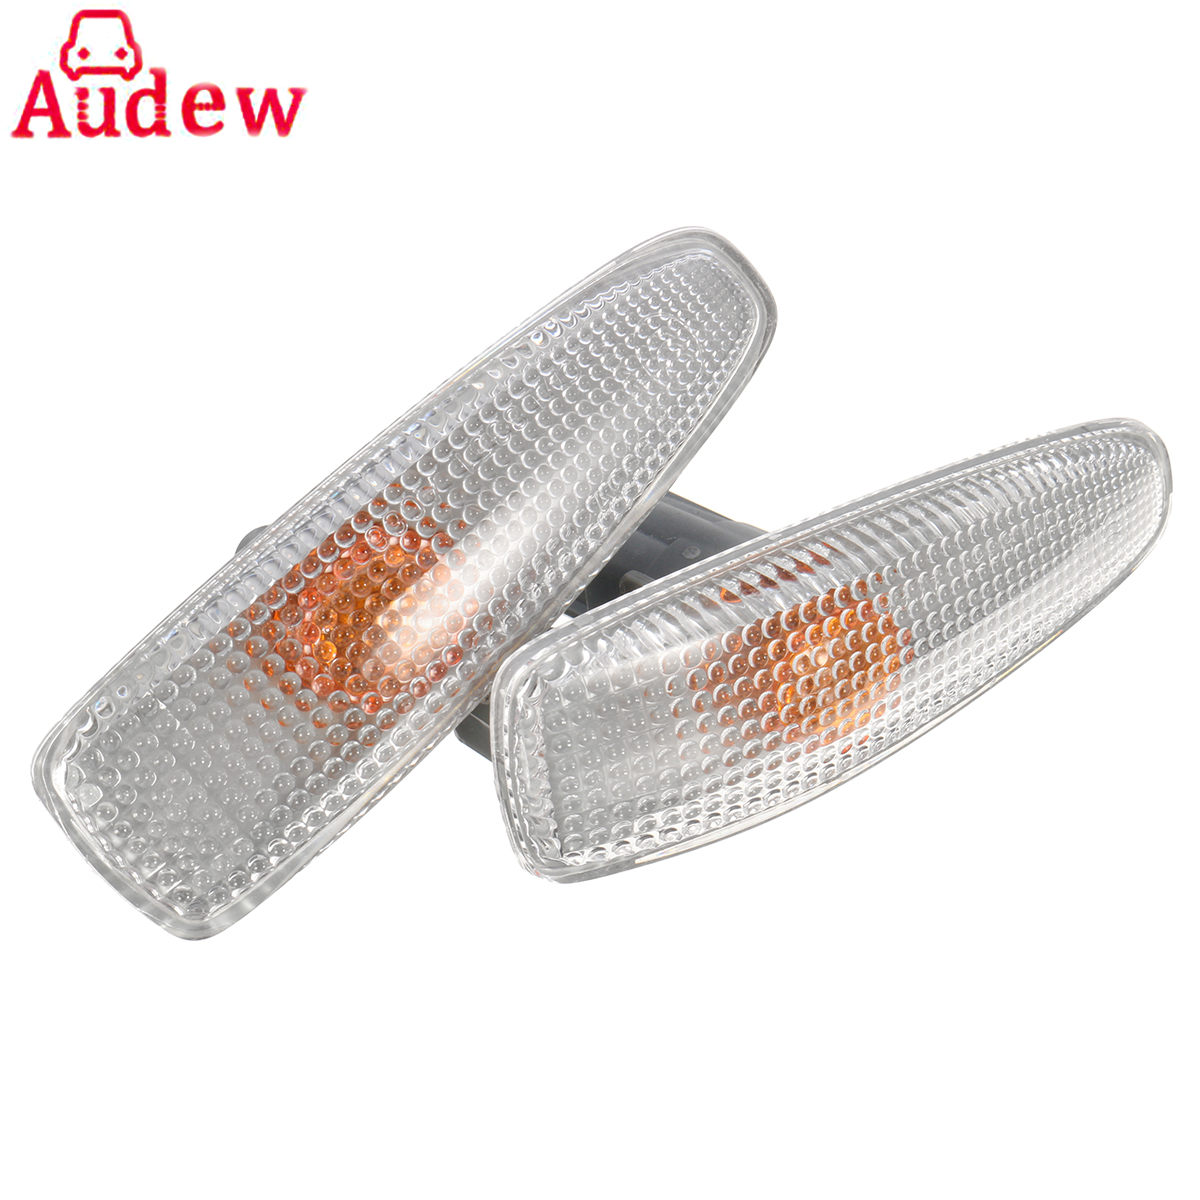 1Pair Car for Fender Side Lights Lamp Warning Light For Mitsubishi Lancer Outlander Sport RVR ASX for mitsubishi outlander lancer 10 9 asx pajero sport l200 colt carisma app control car interior led atmosphere decoration light